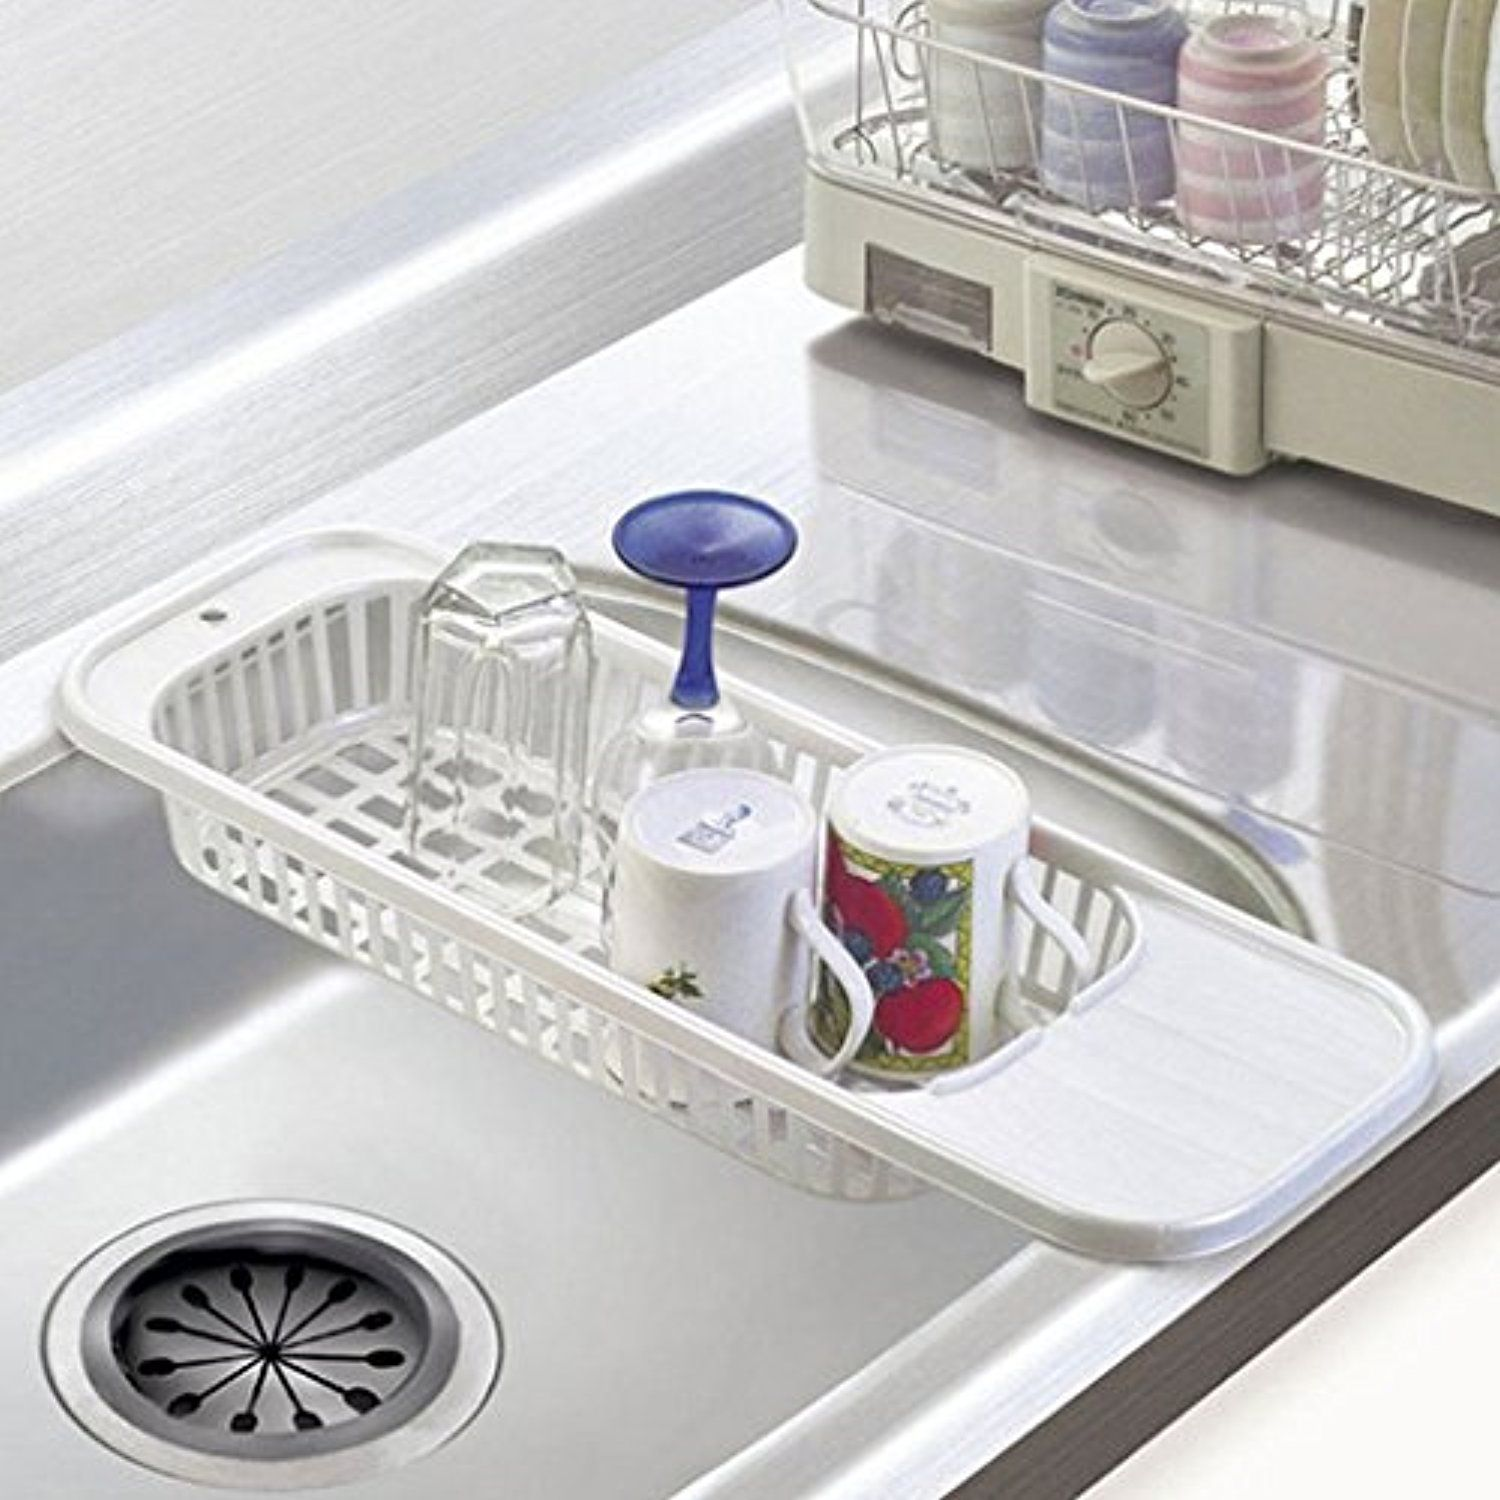 Kitchen Sink Drain Rack Cutlery Shelving Treatment Of Fruits And